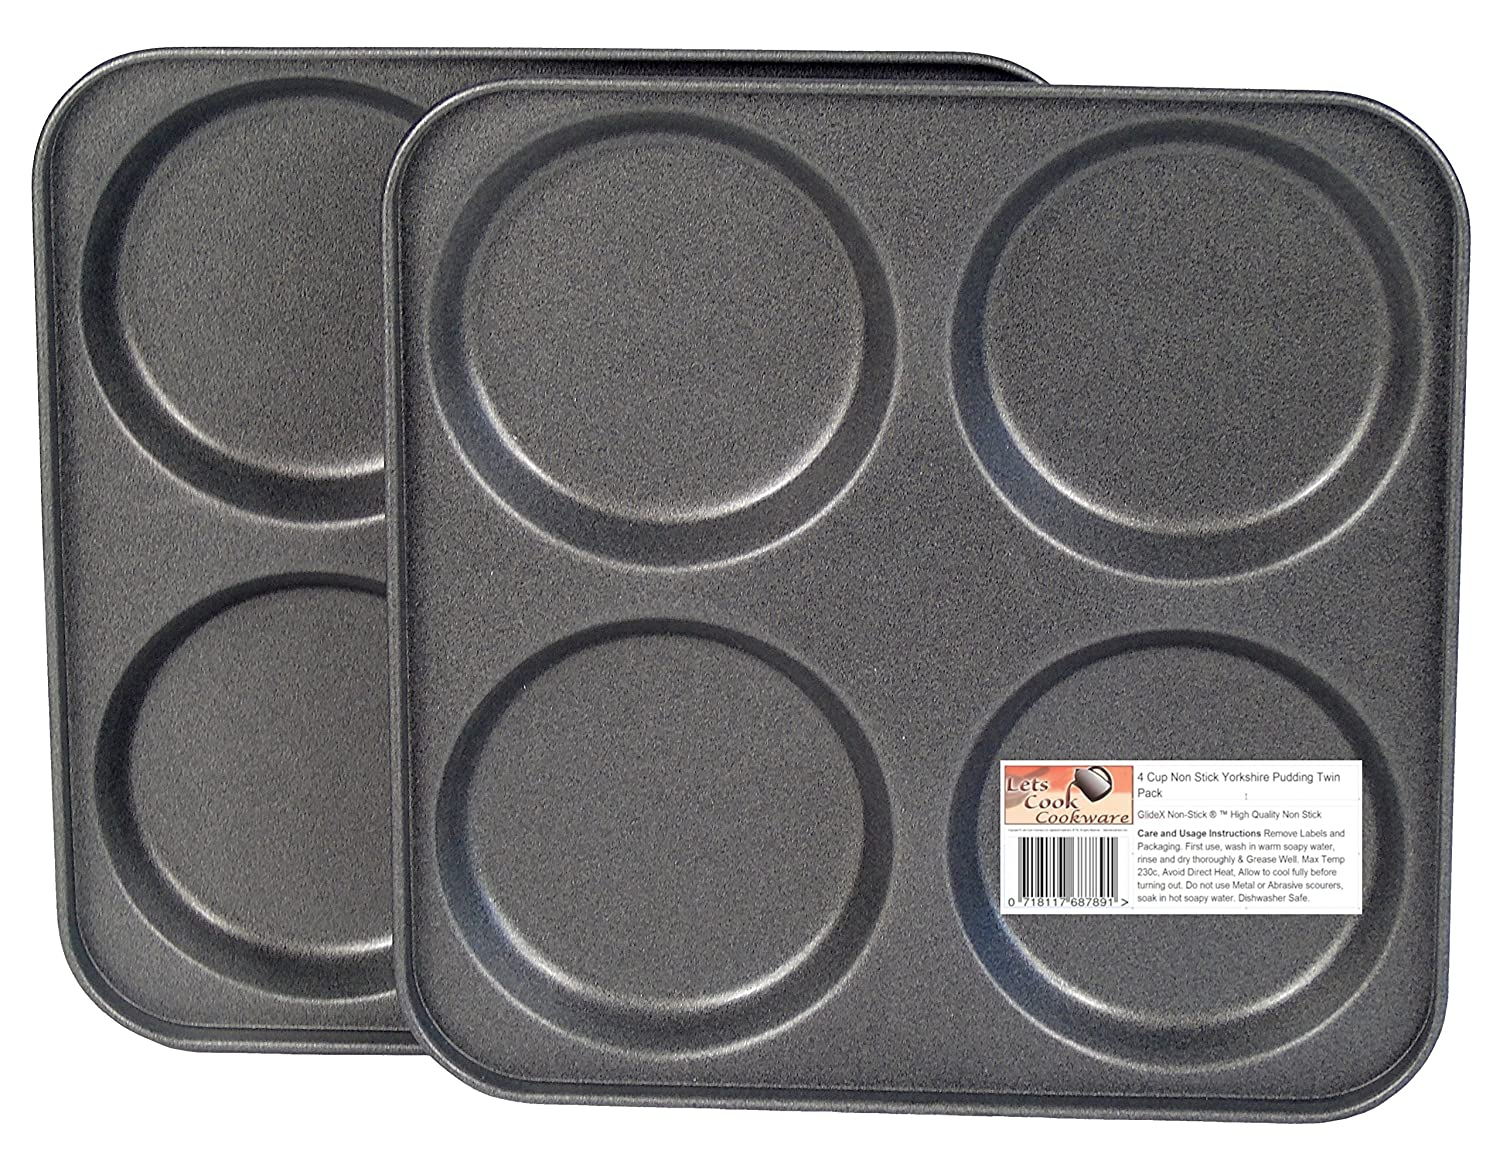 4 Hole Yorkshire Pudding Trays, Twin Pack, British Made with GlideX Non-Stick by Lets Cook Cookware